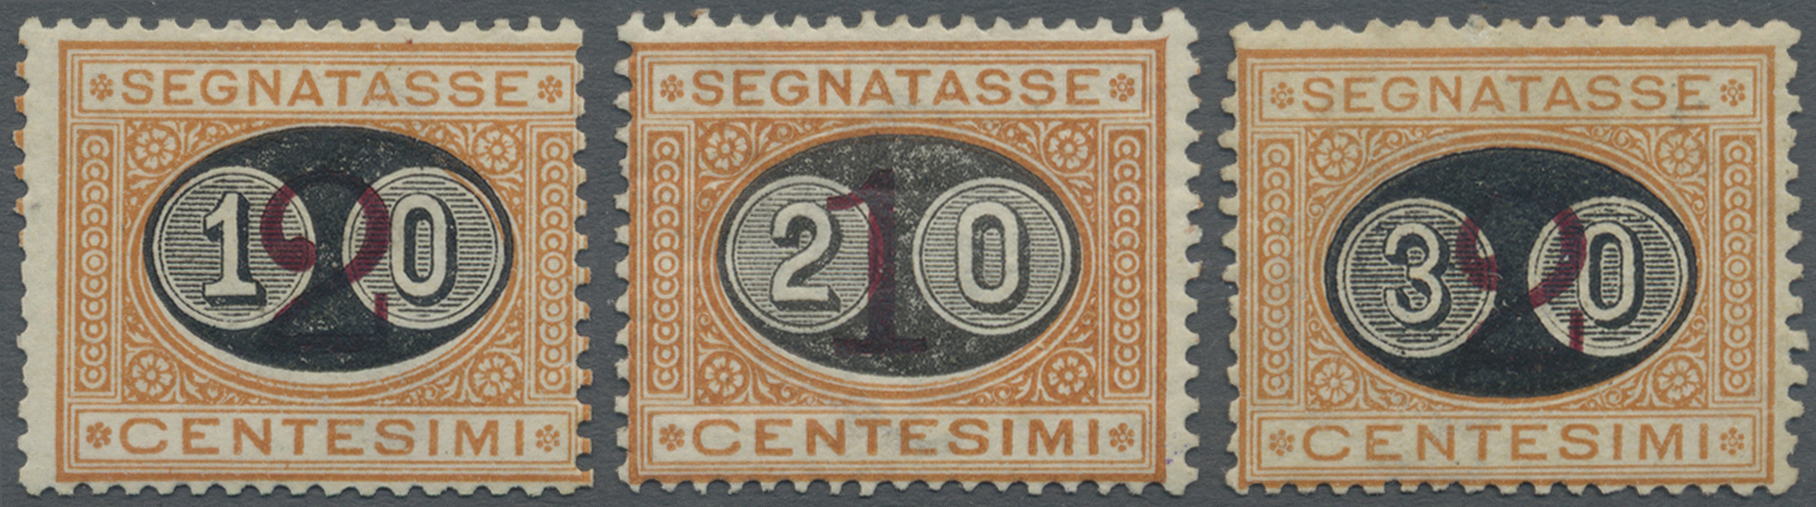 Lot 17121 - Italien - Portomarken  -  Auktionshaus Christoph Gärtner GmbH & Co. KG Single lots Philately Overseas & Europe. Auction #39 Day 4